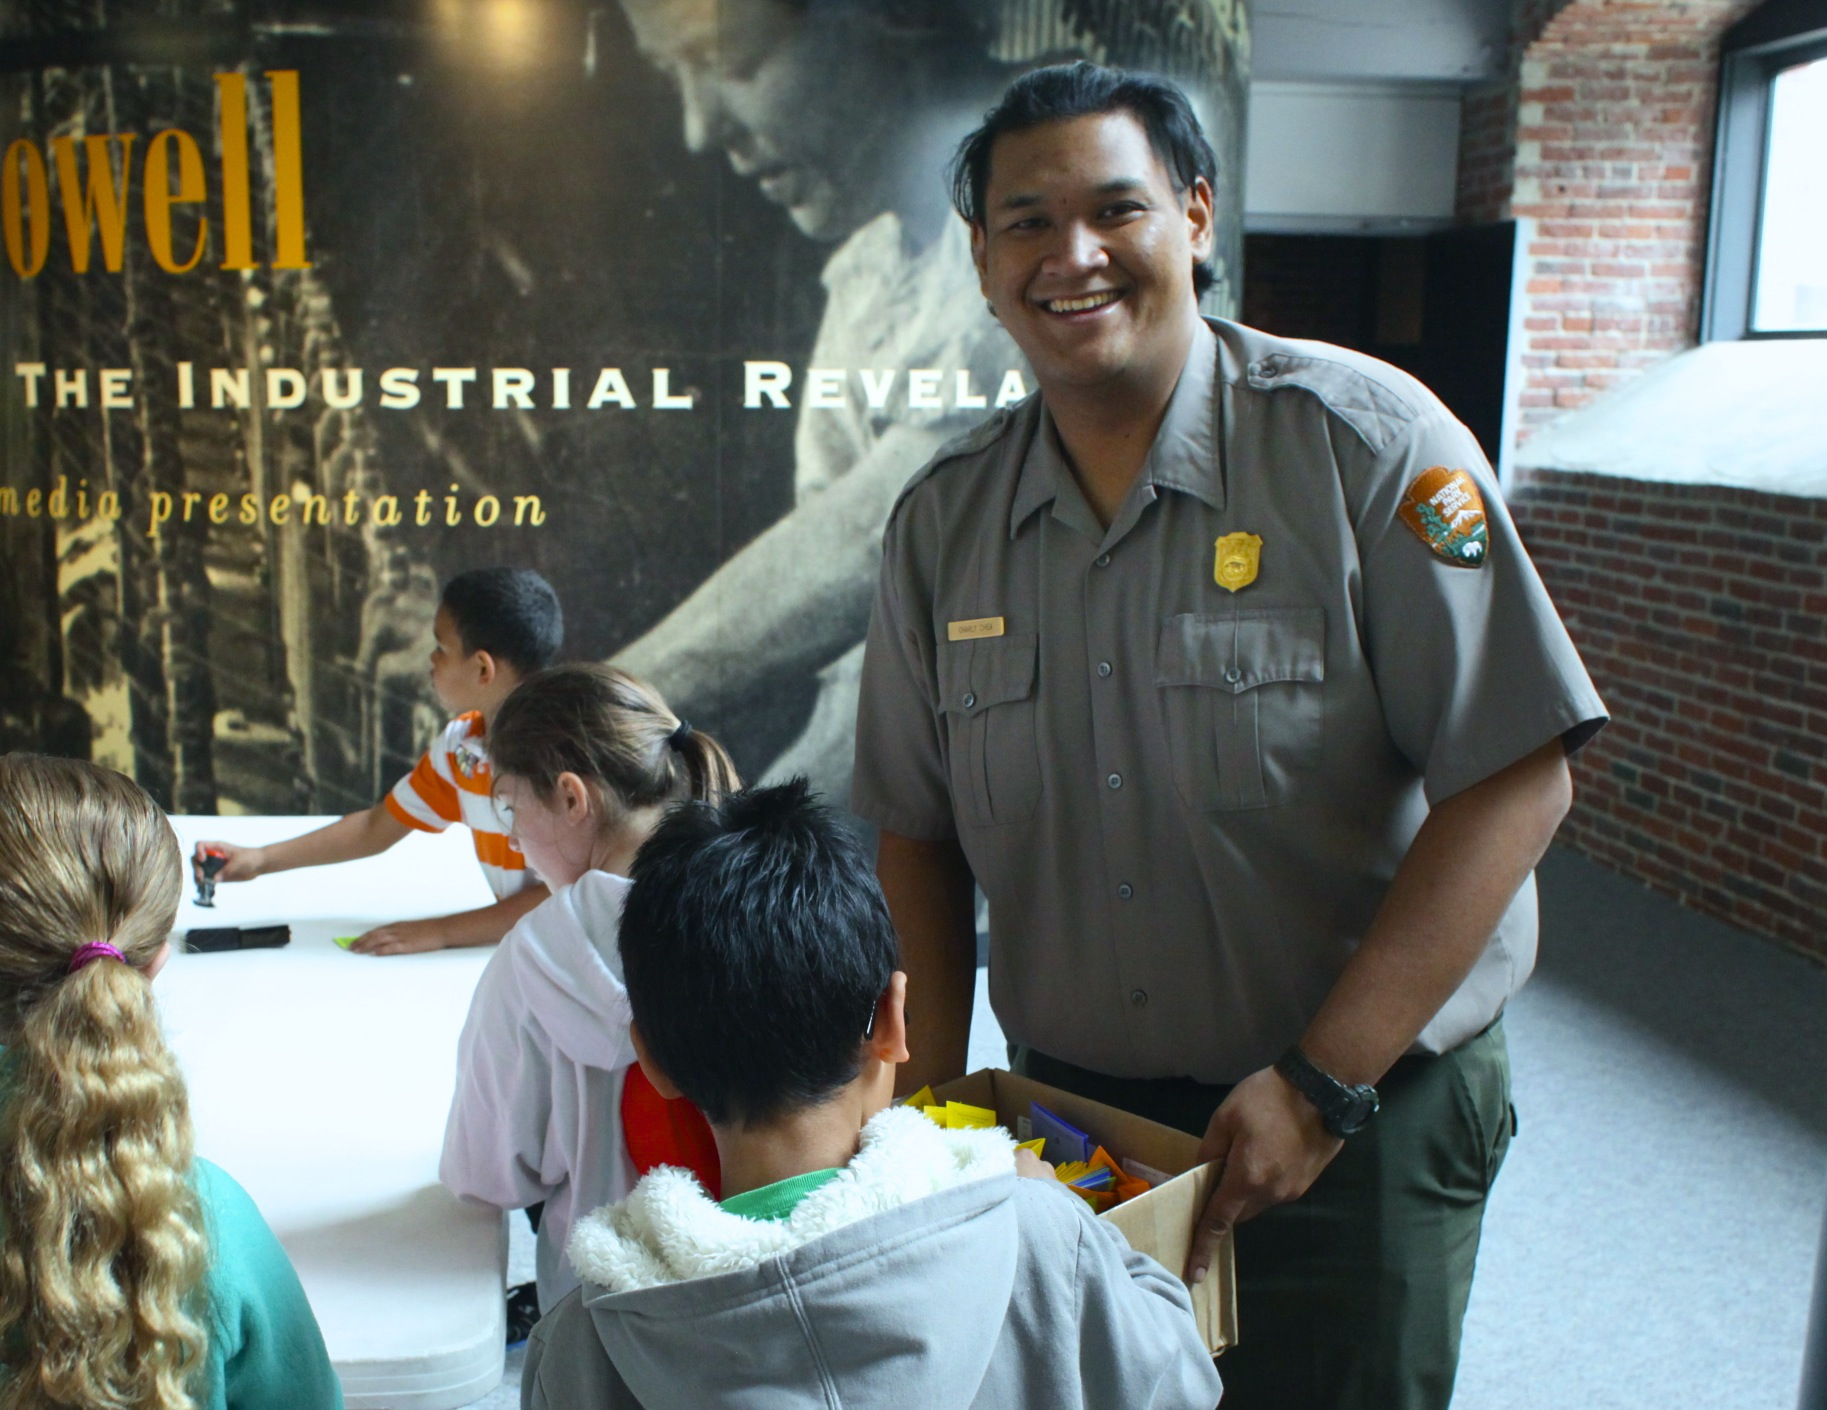 A Park Ranger helps kids with a craft